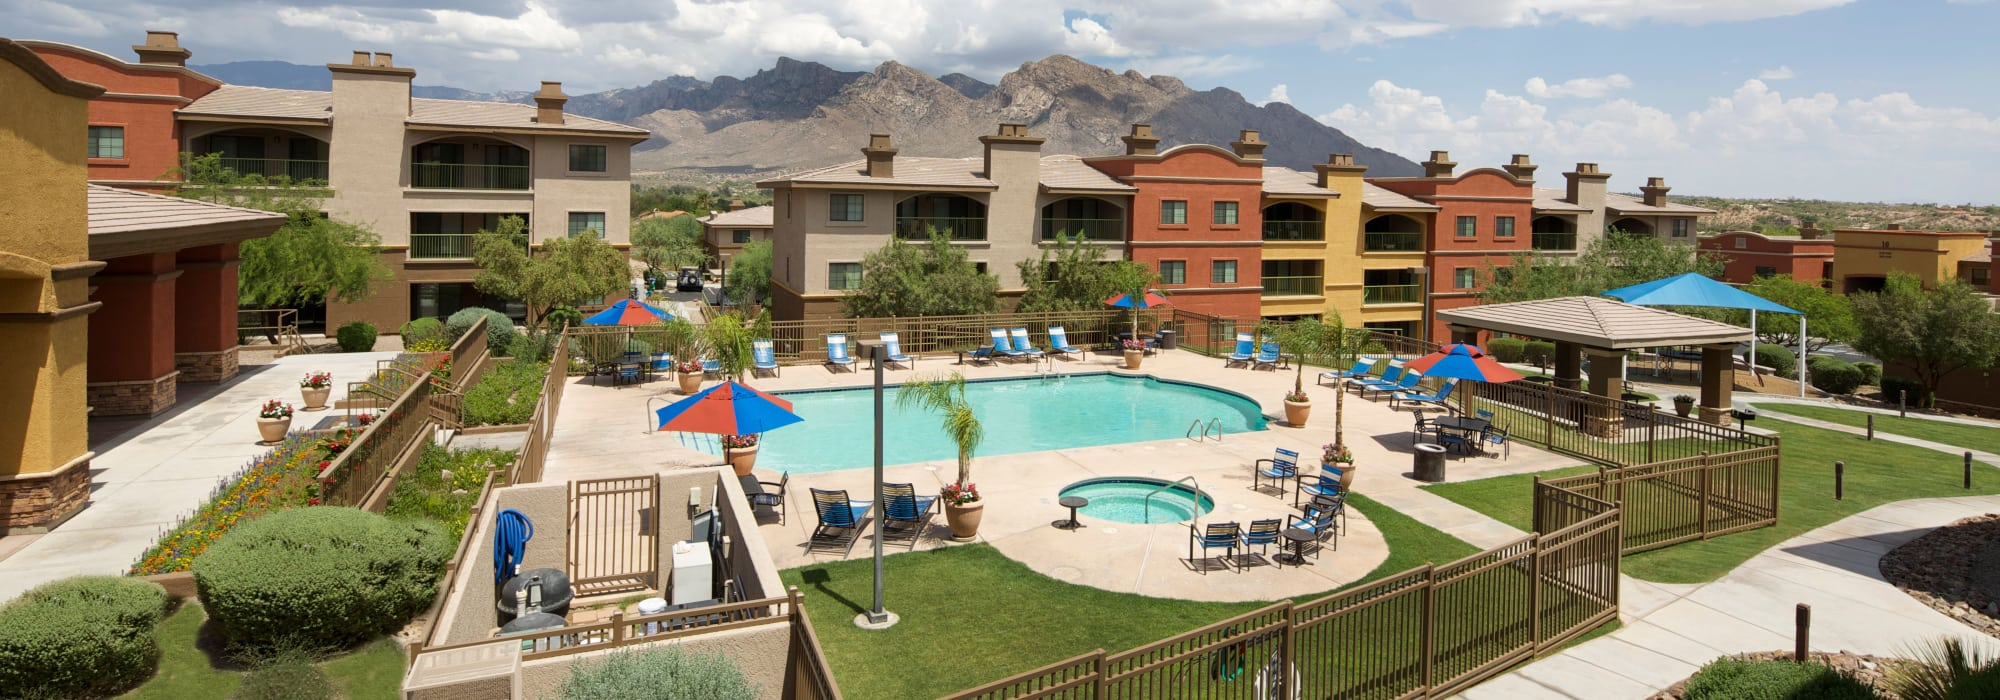 Apartments at Oro Vista Apartments in Oro Valley, Arizona